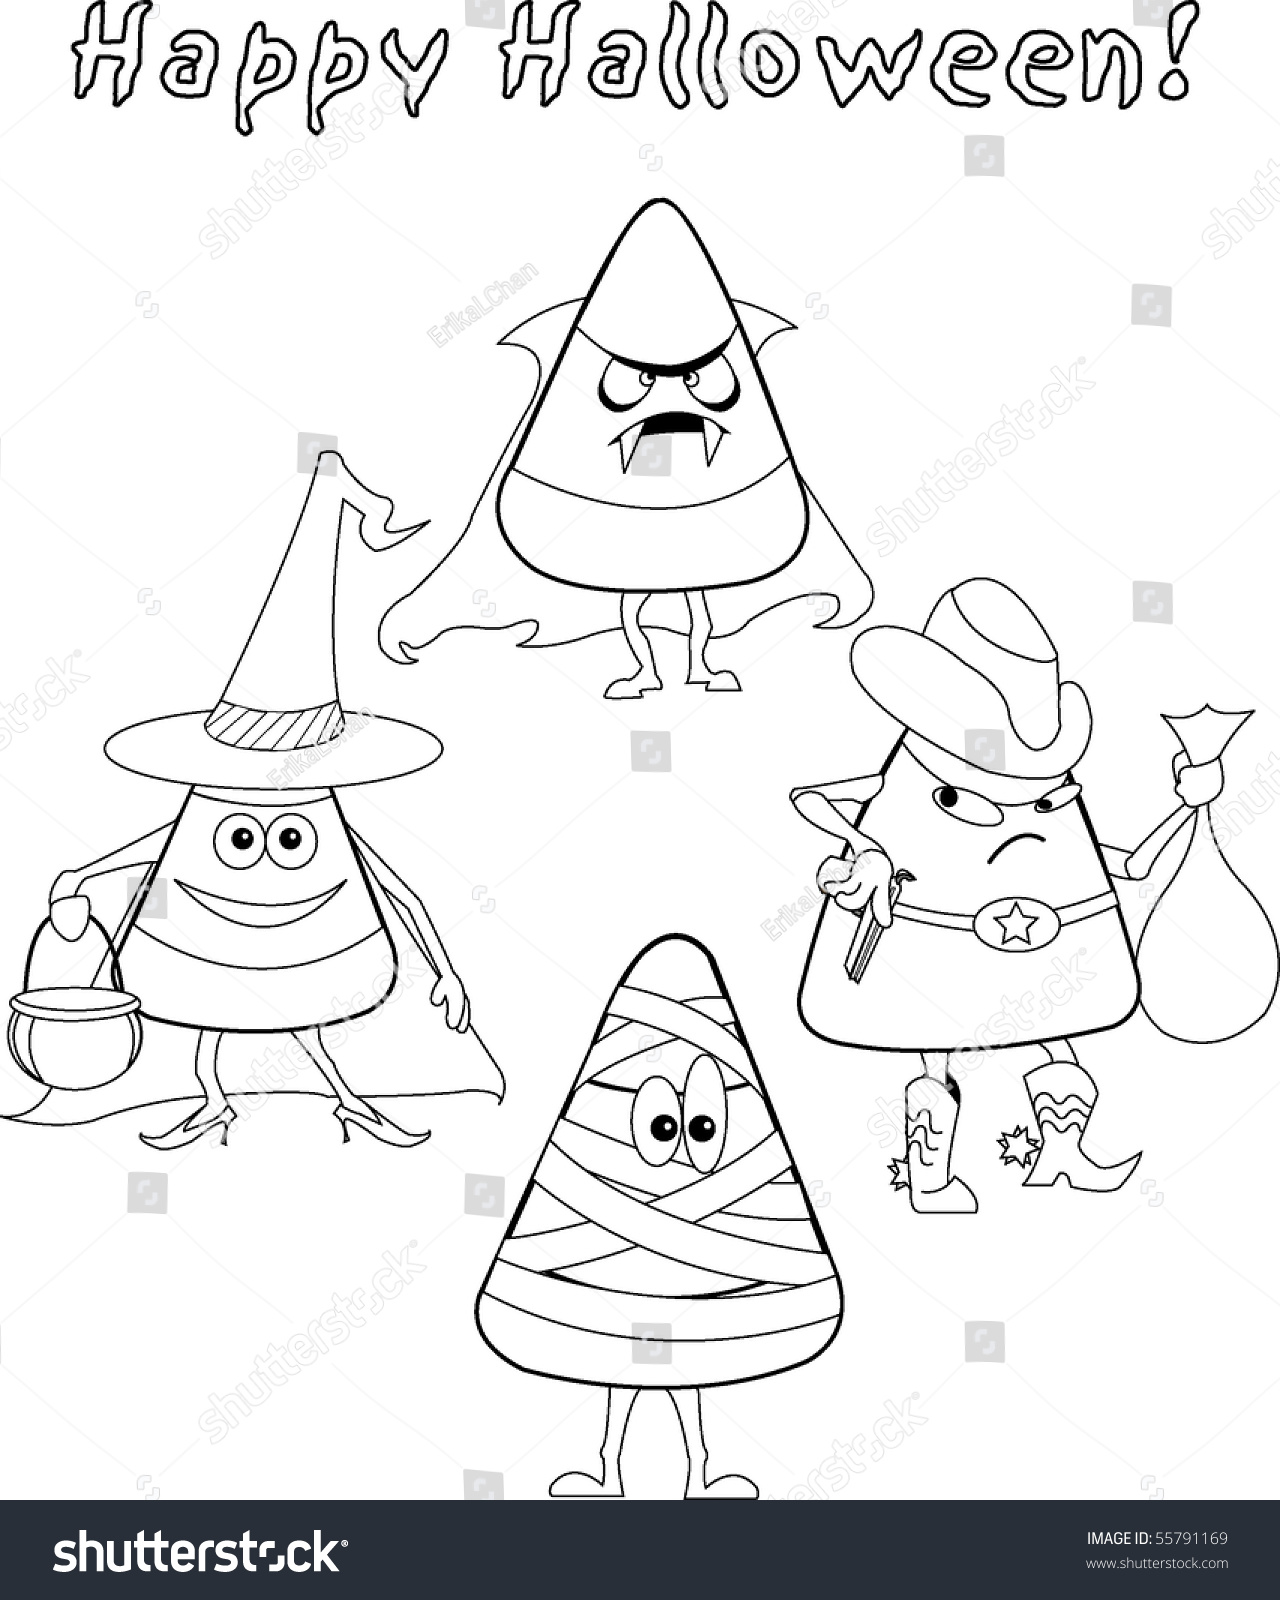 Black And White Kids Halloween Candy Corn Coloring Sheet